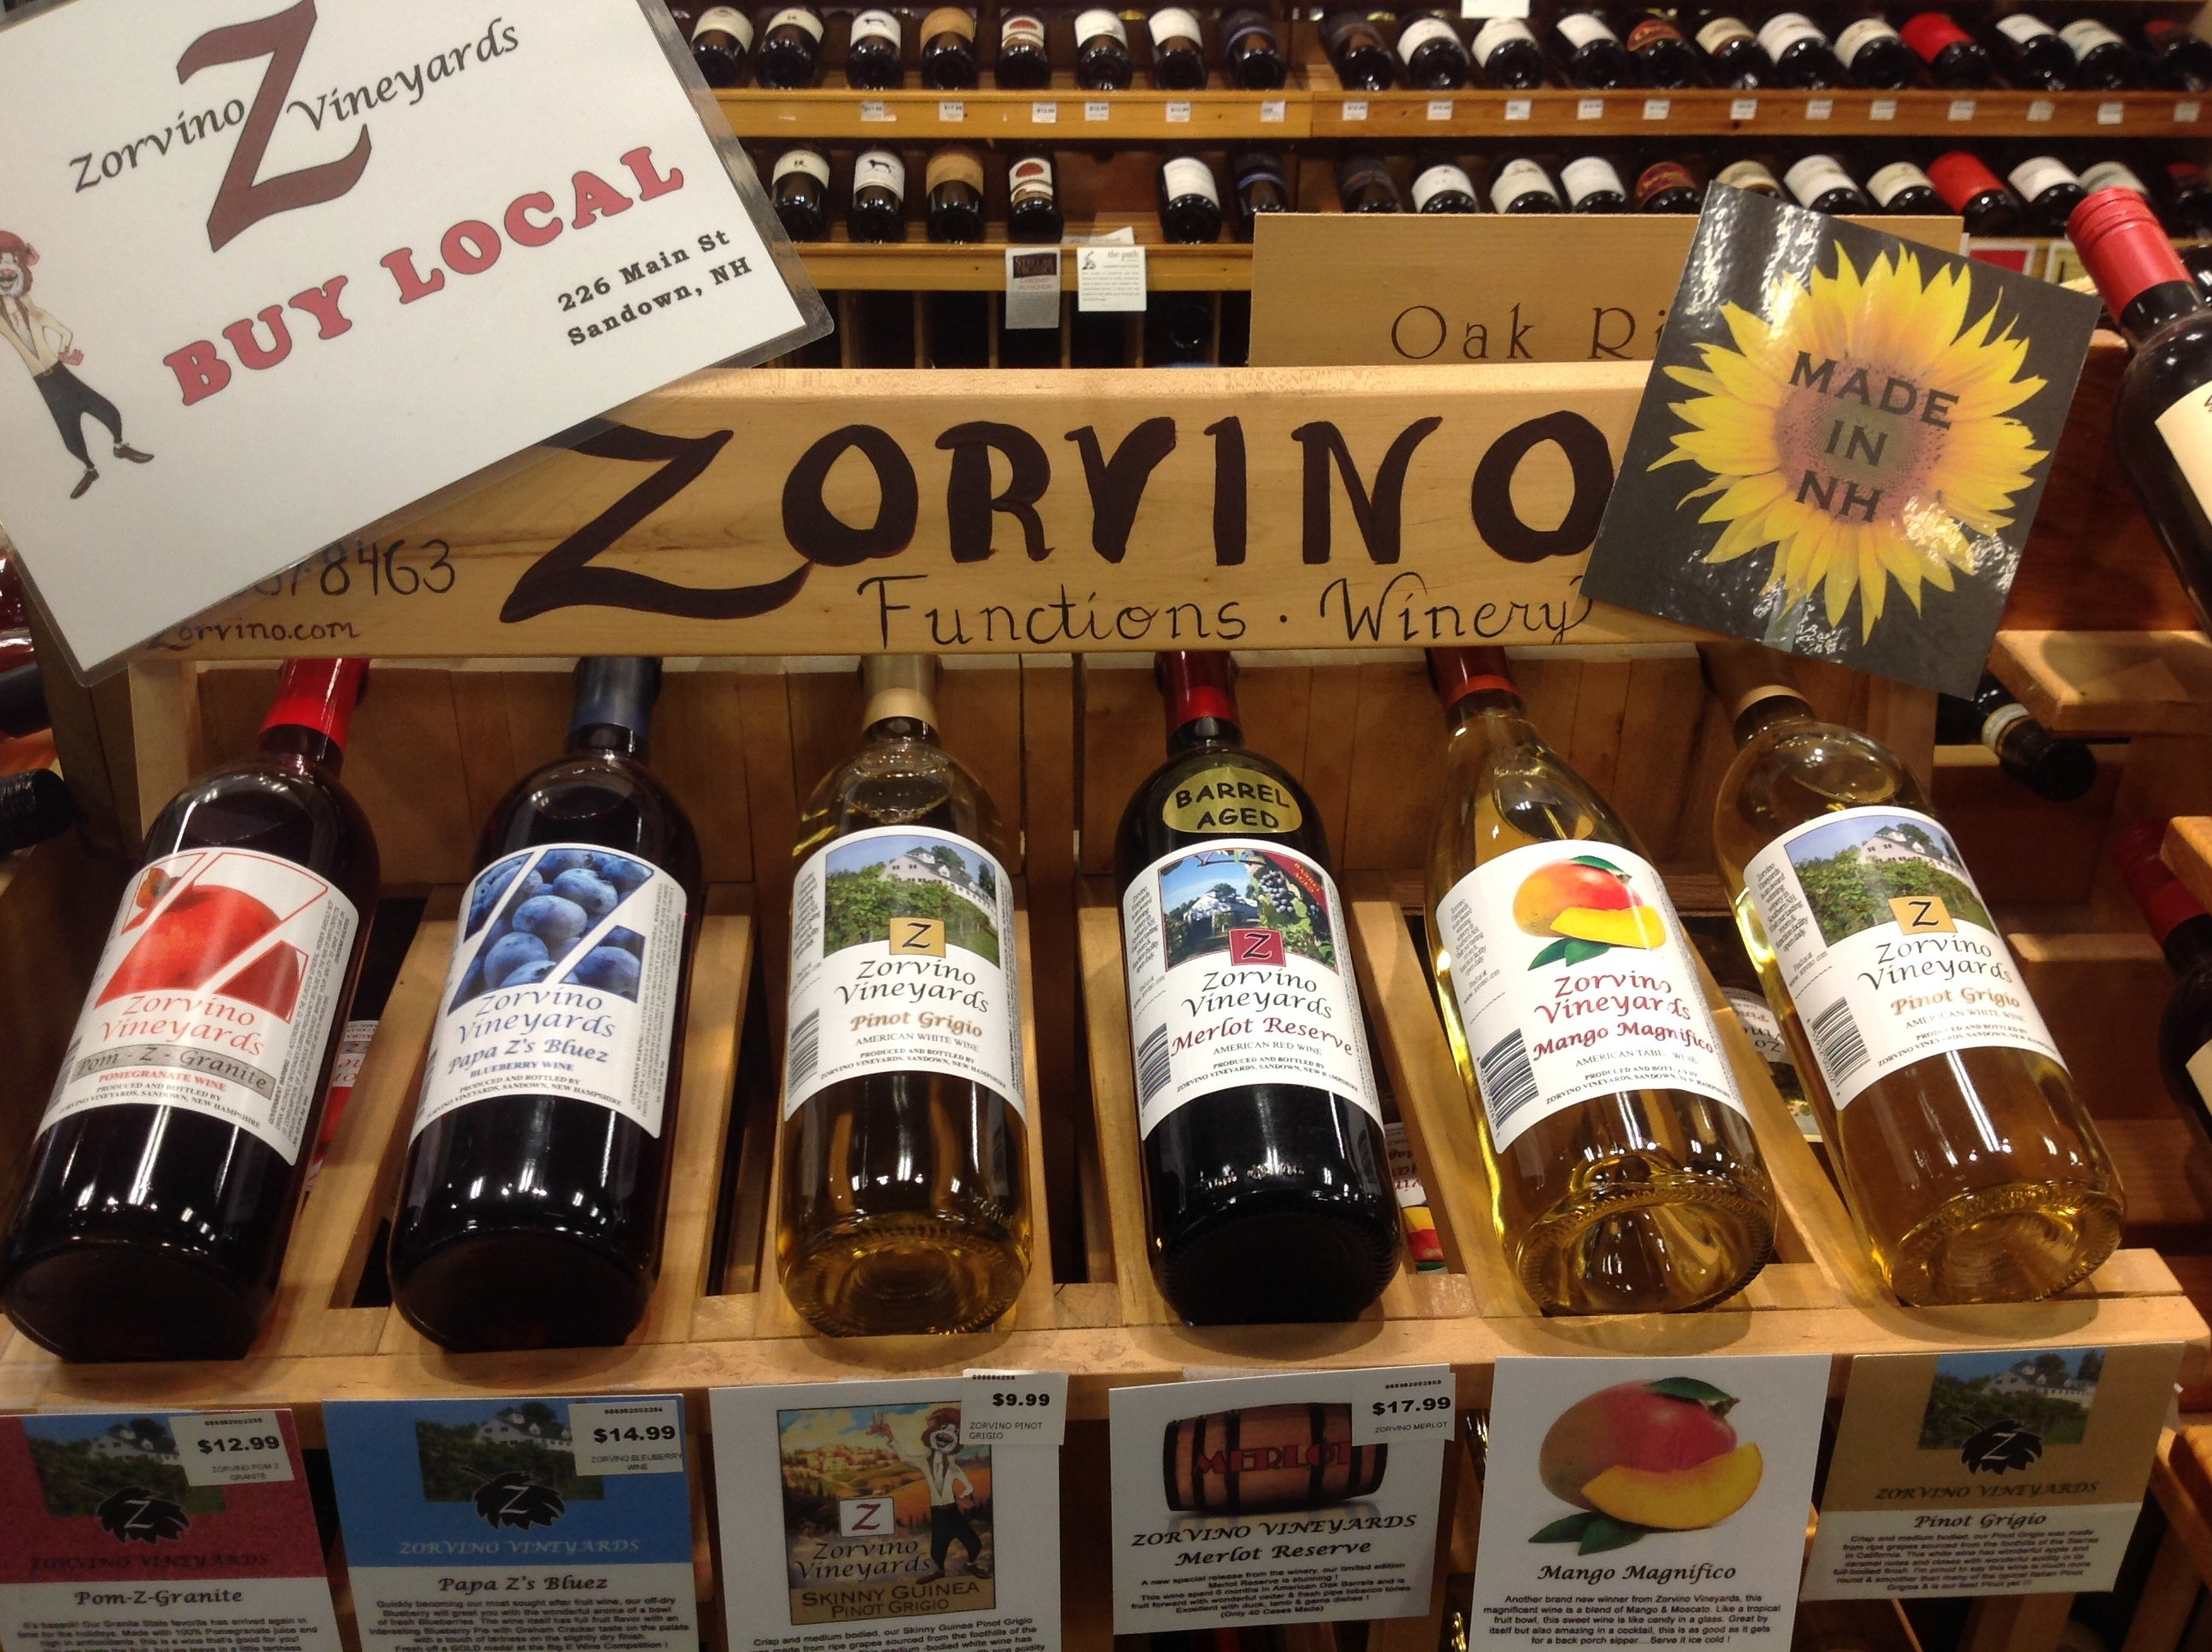 Zorvino Winery